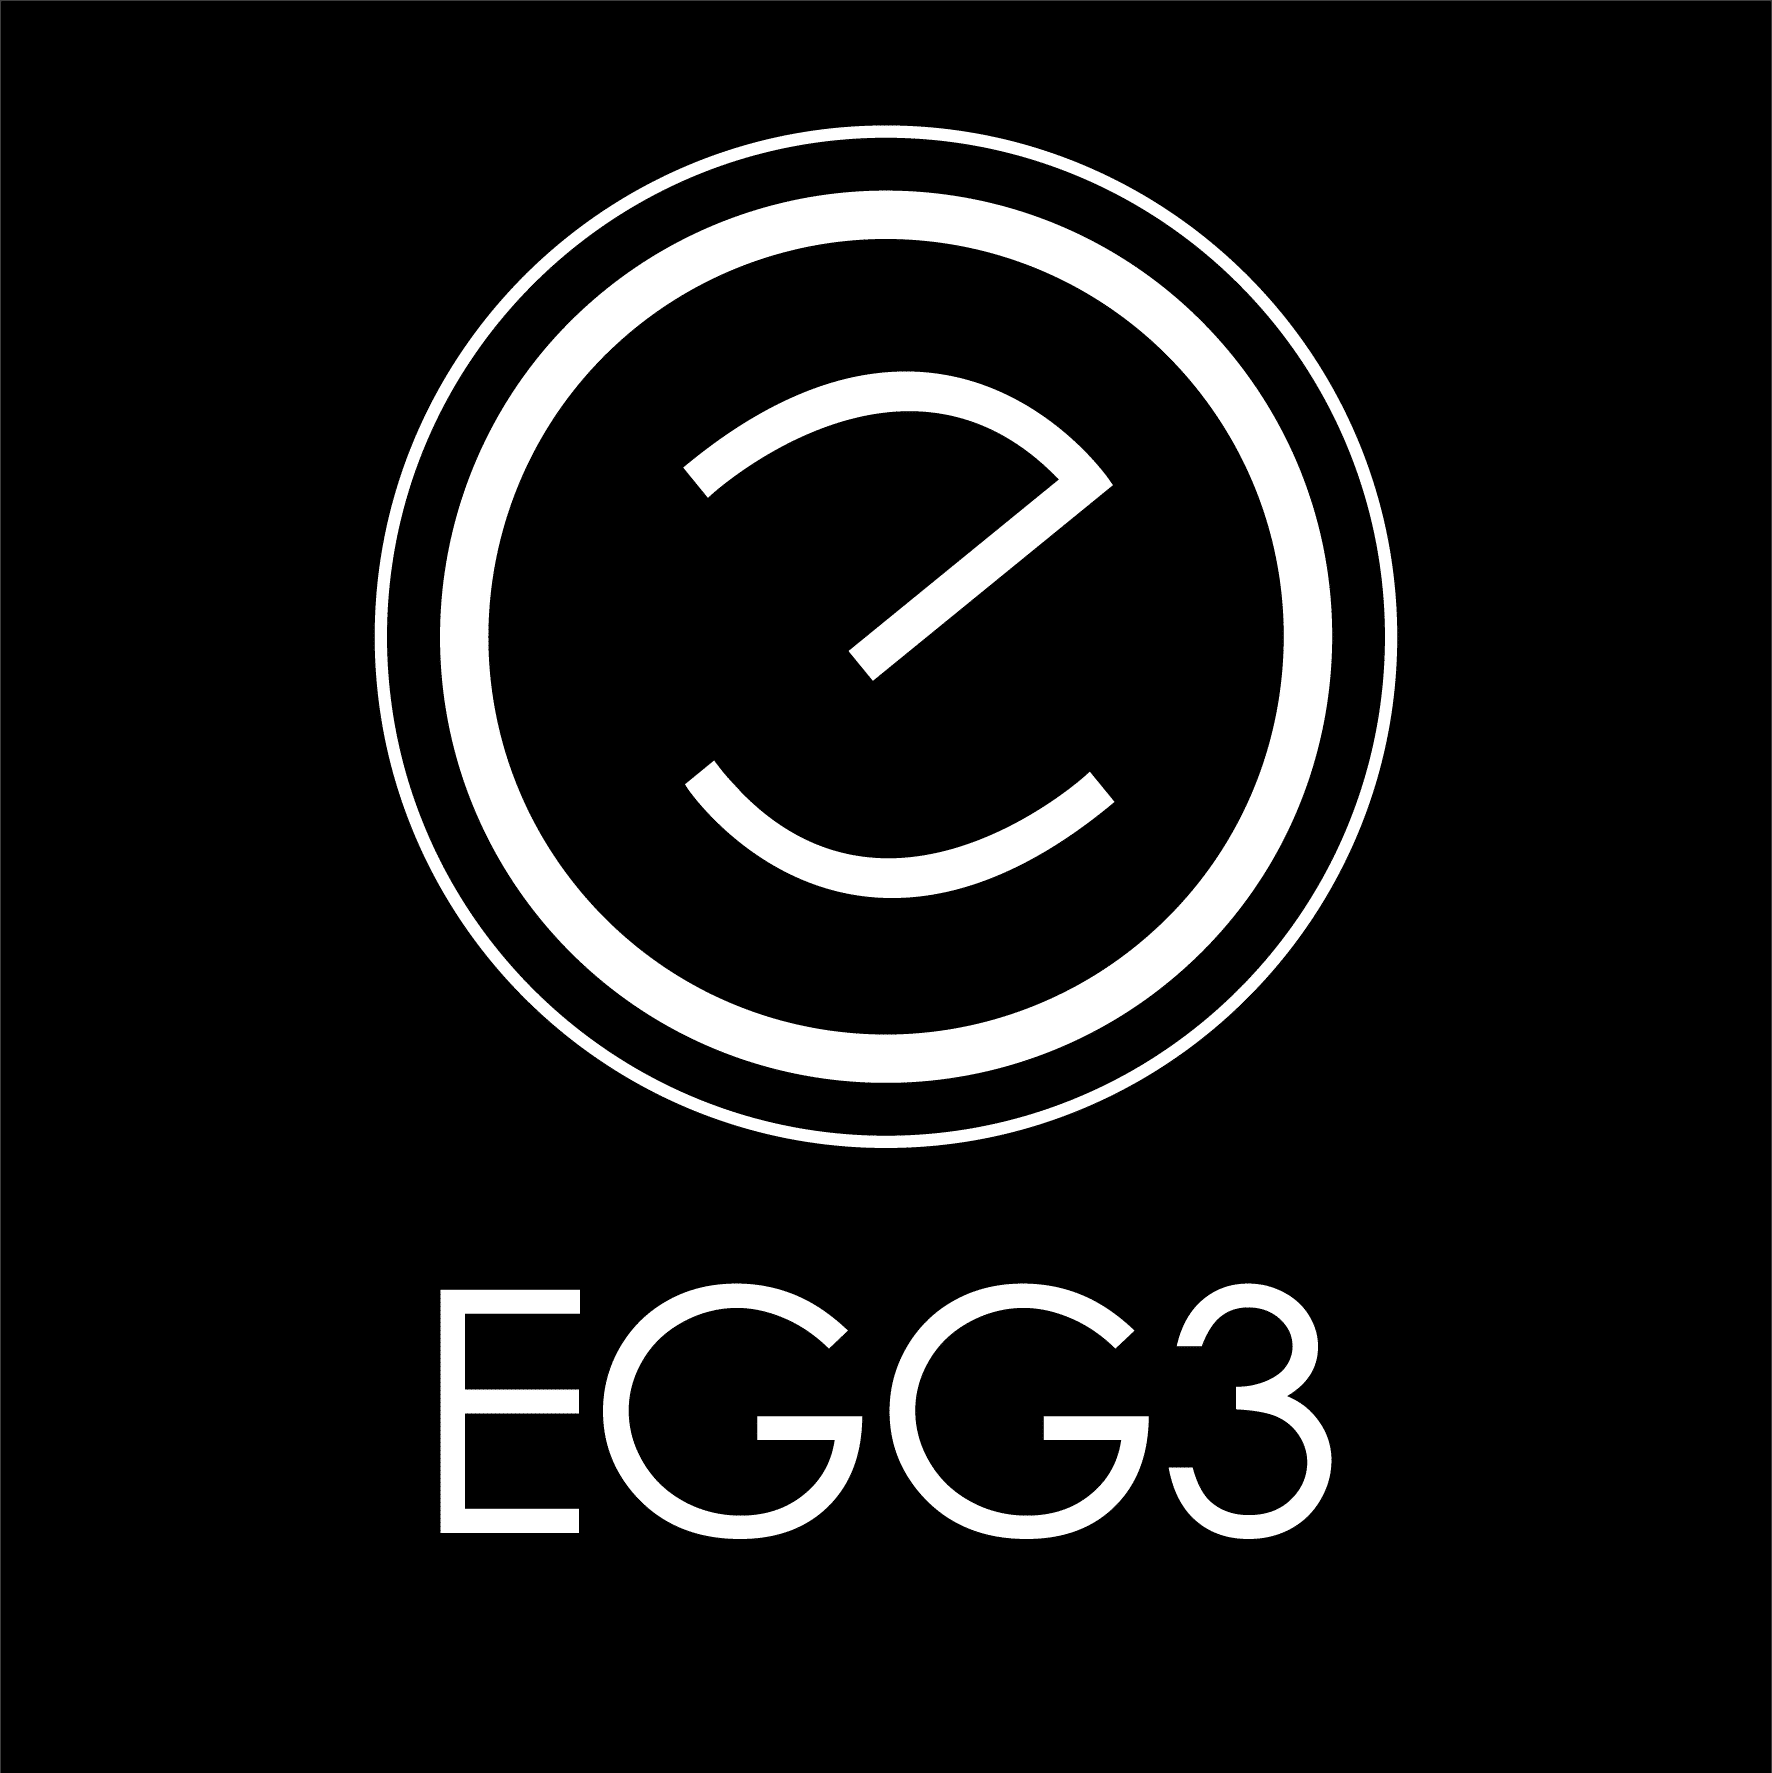 Egg3 logo Marketing